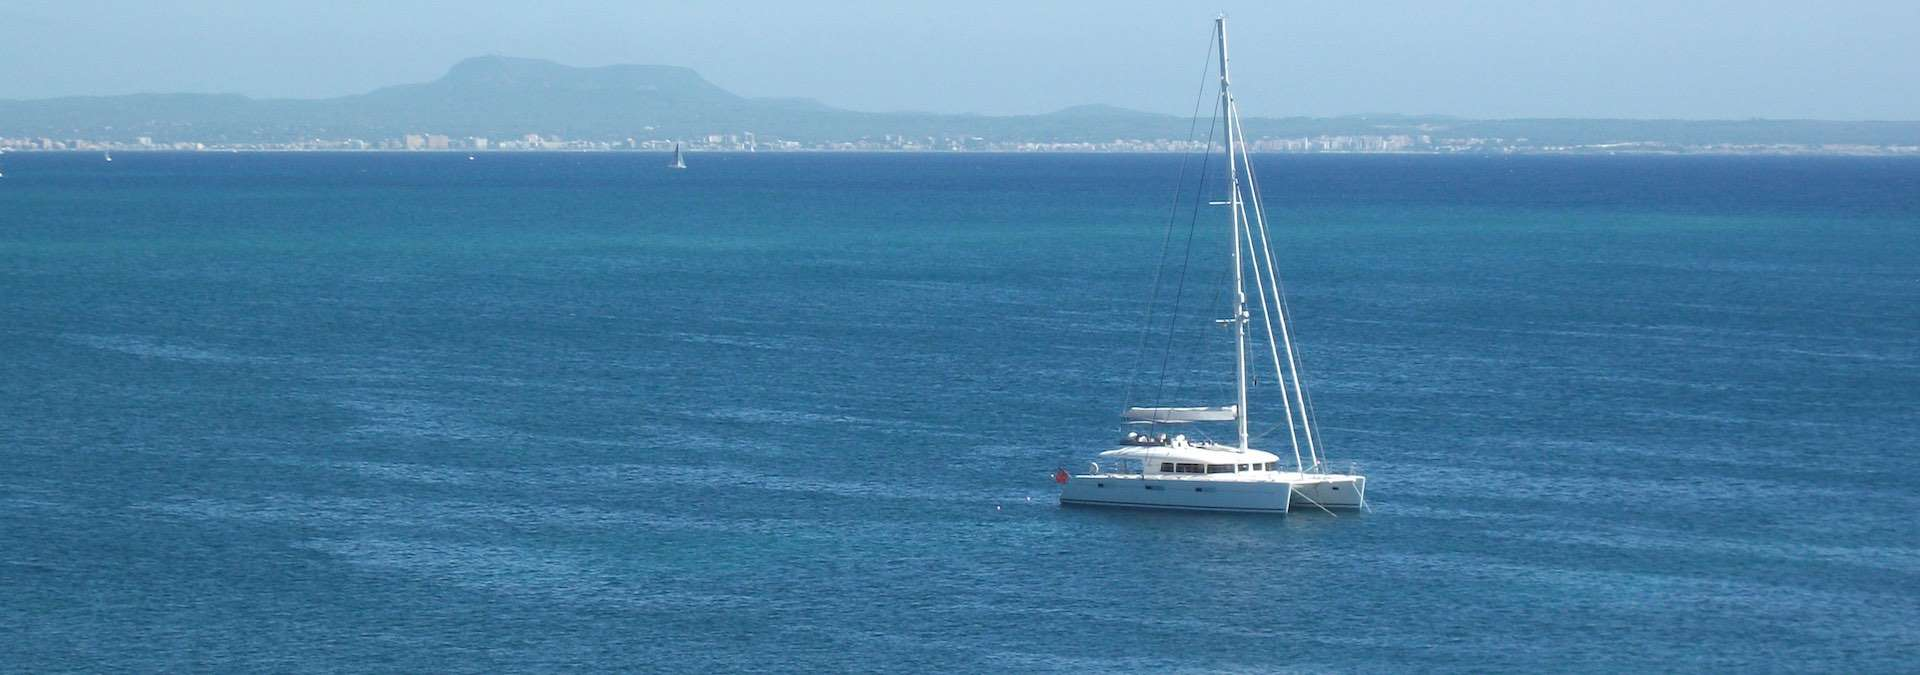 Yachtcharter-Connection   Yacht Charters, Luxury Yacht Charter ...